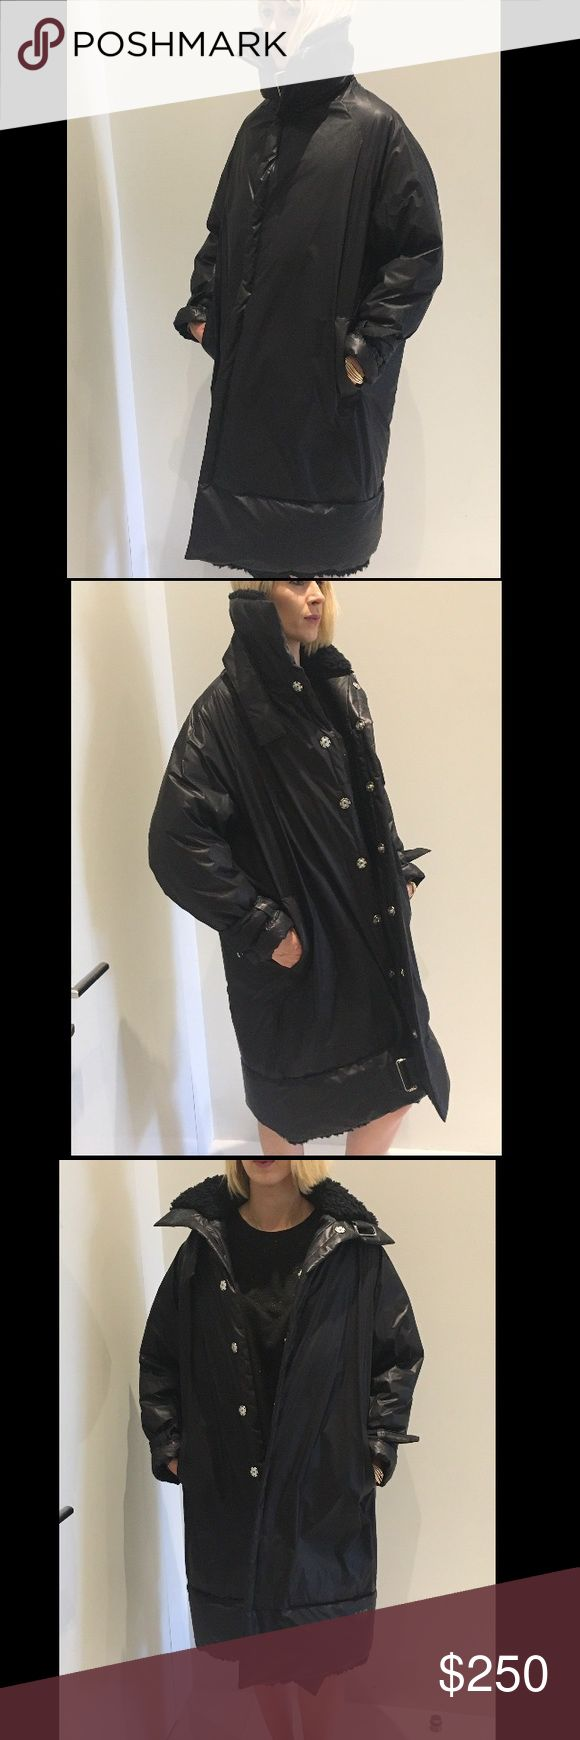 Long Puffer Y-3 Coat! Unisex 🖤💣😎 Good Condition! Worn Once! Long, Puffer Cool Coat by Y-3! I am 5ft9!💣✨🖤 Y-3 Jackets & Coats Puffers